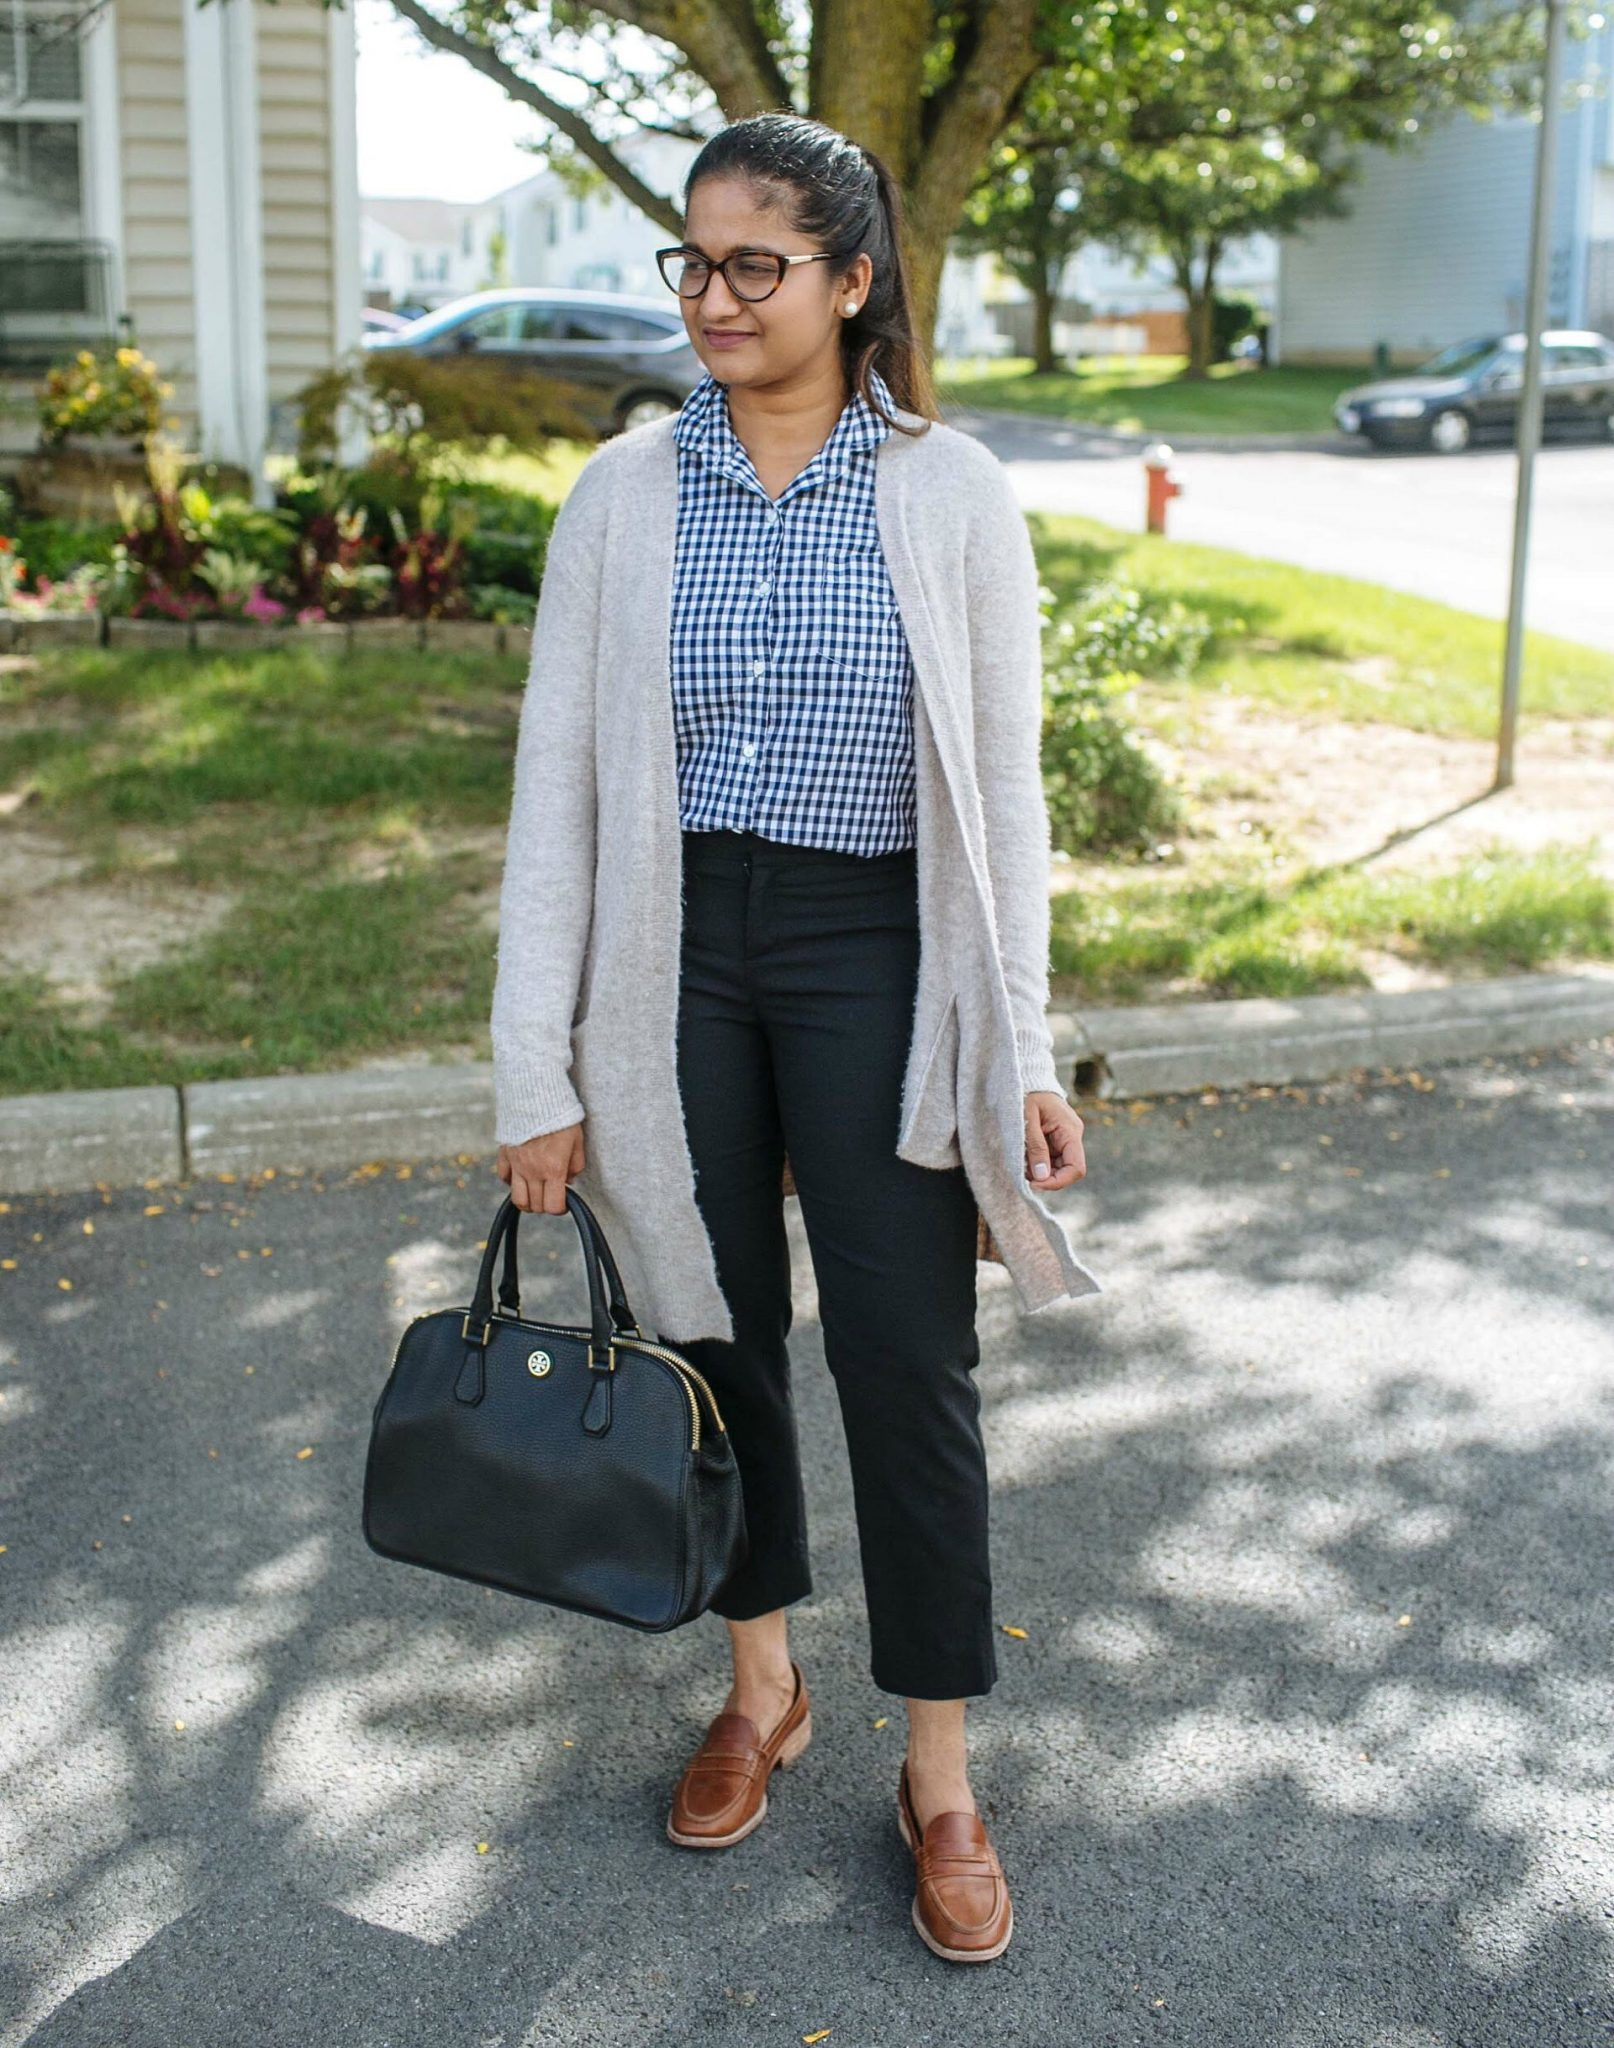 wearing madewell Kent Cardigan Sweater | 20 Outfit Fall colorful capsule wardrobe | Colorful Fall Work Outfits featured by popular Ohio modest fashion blogger, Dreaming Loud